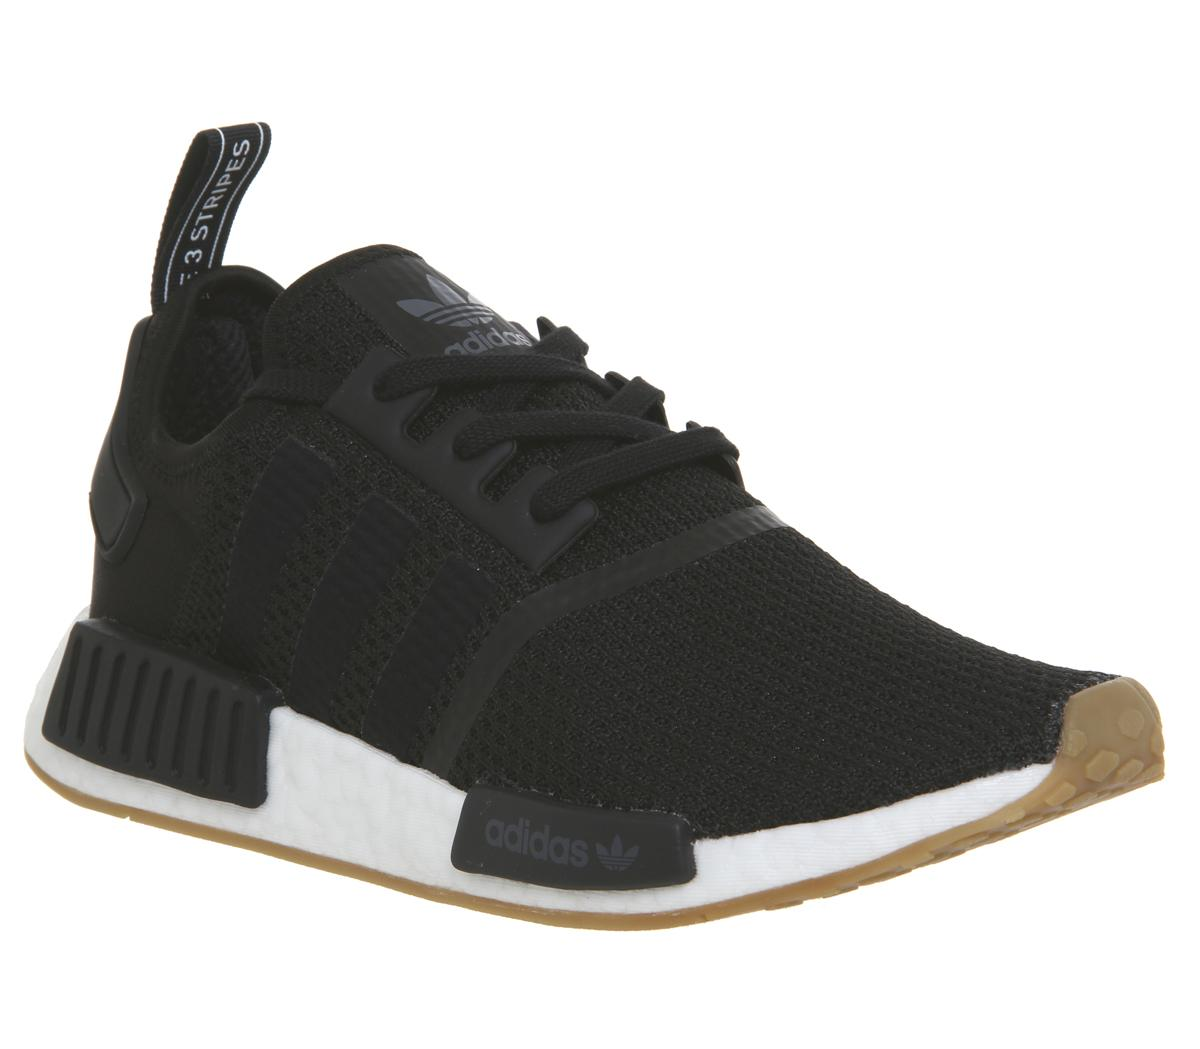 buy online 590e5 7f71c adidas Nmd R1 Trainers Core Black Core Black Gum - His trainers